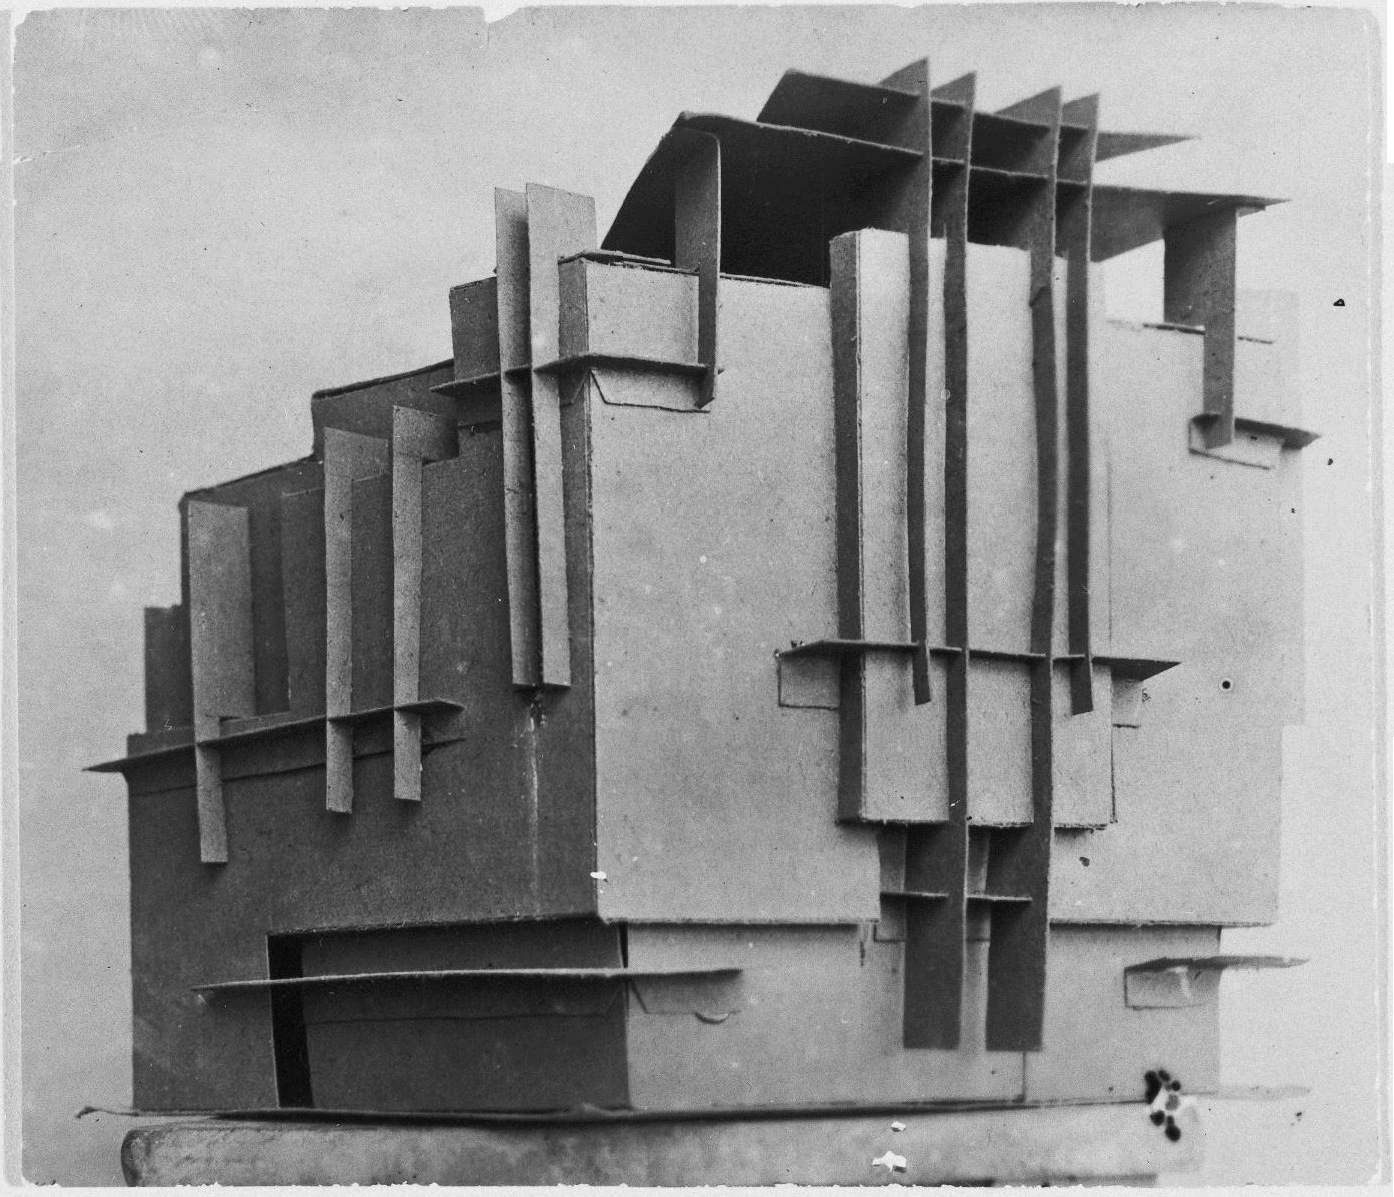 Photograph of a student model on the topic %22Finding the Form of Blunt Massive Volume (Parallelepiped, Cylinder, Complex Configuration)%22 for the %22Space%22 course at the Vkhutemas (Higher State Artistic Technical Studios), Moscow between 1920-1926yy